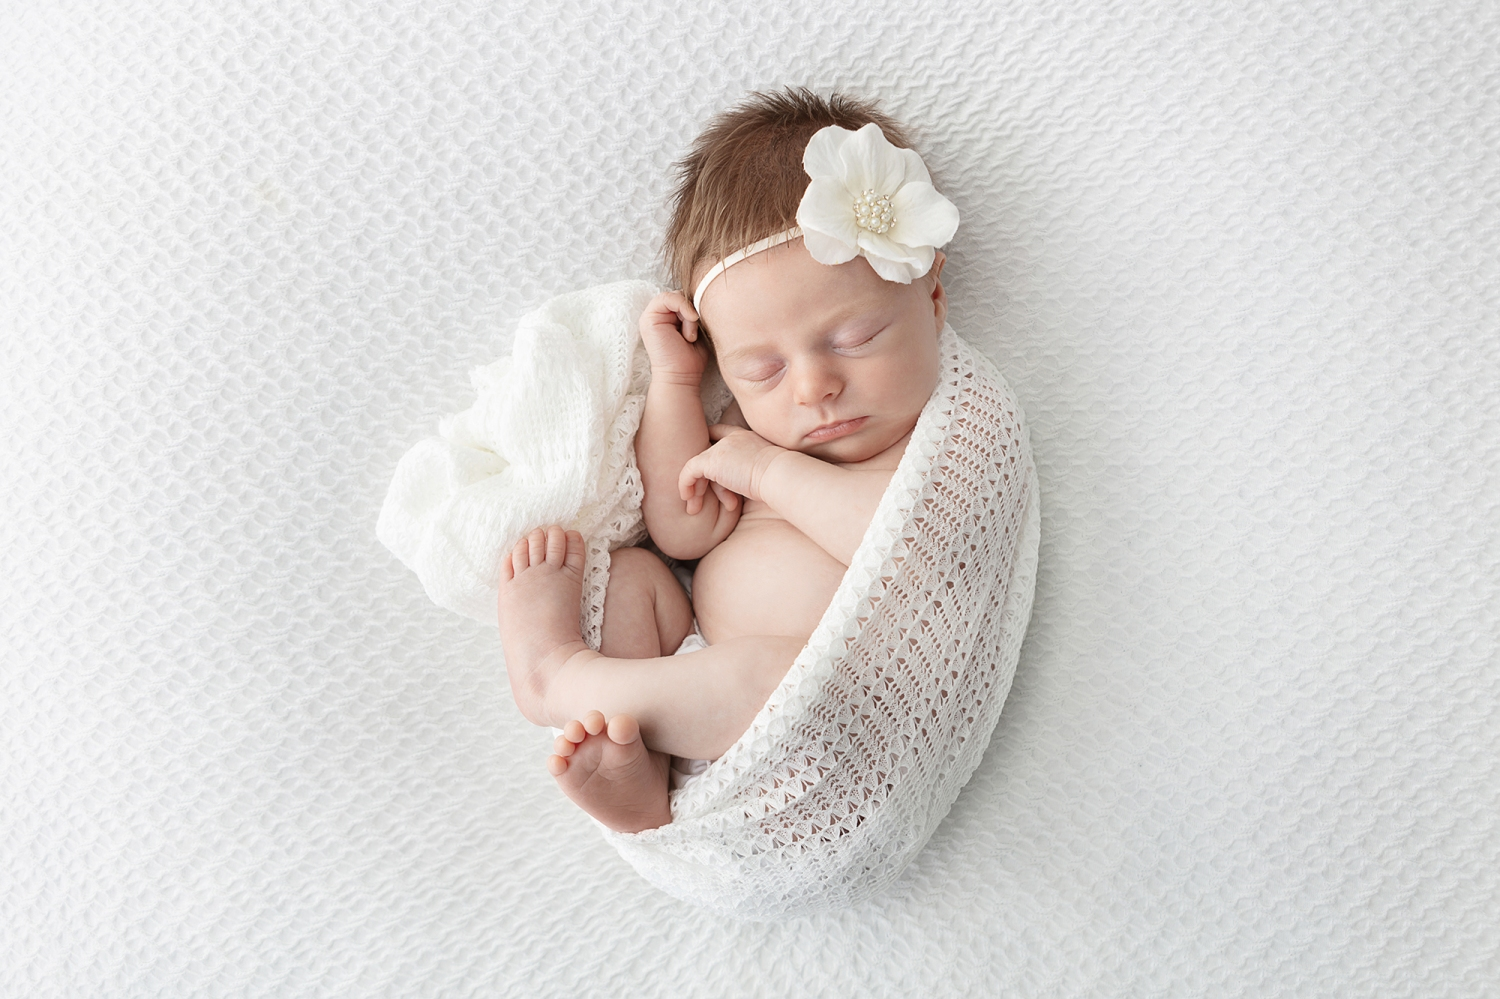 sleeping newborn with a head full of red hair wrapped in an open knit ivory blanket on a woven white background, baby wearing a big white flower headband with pearl flower center